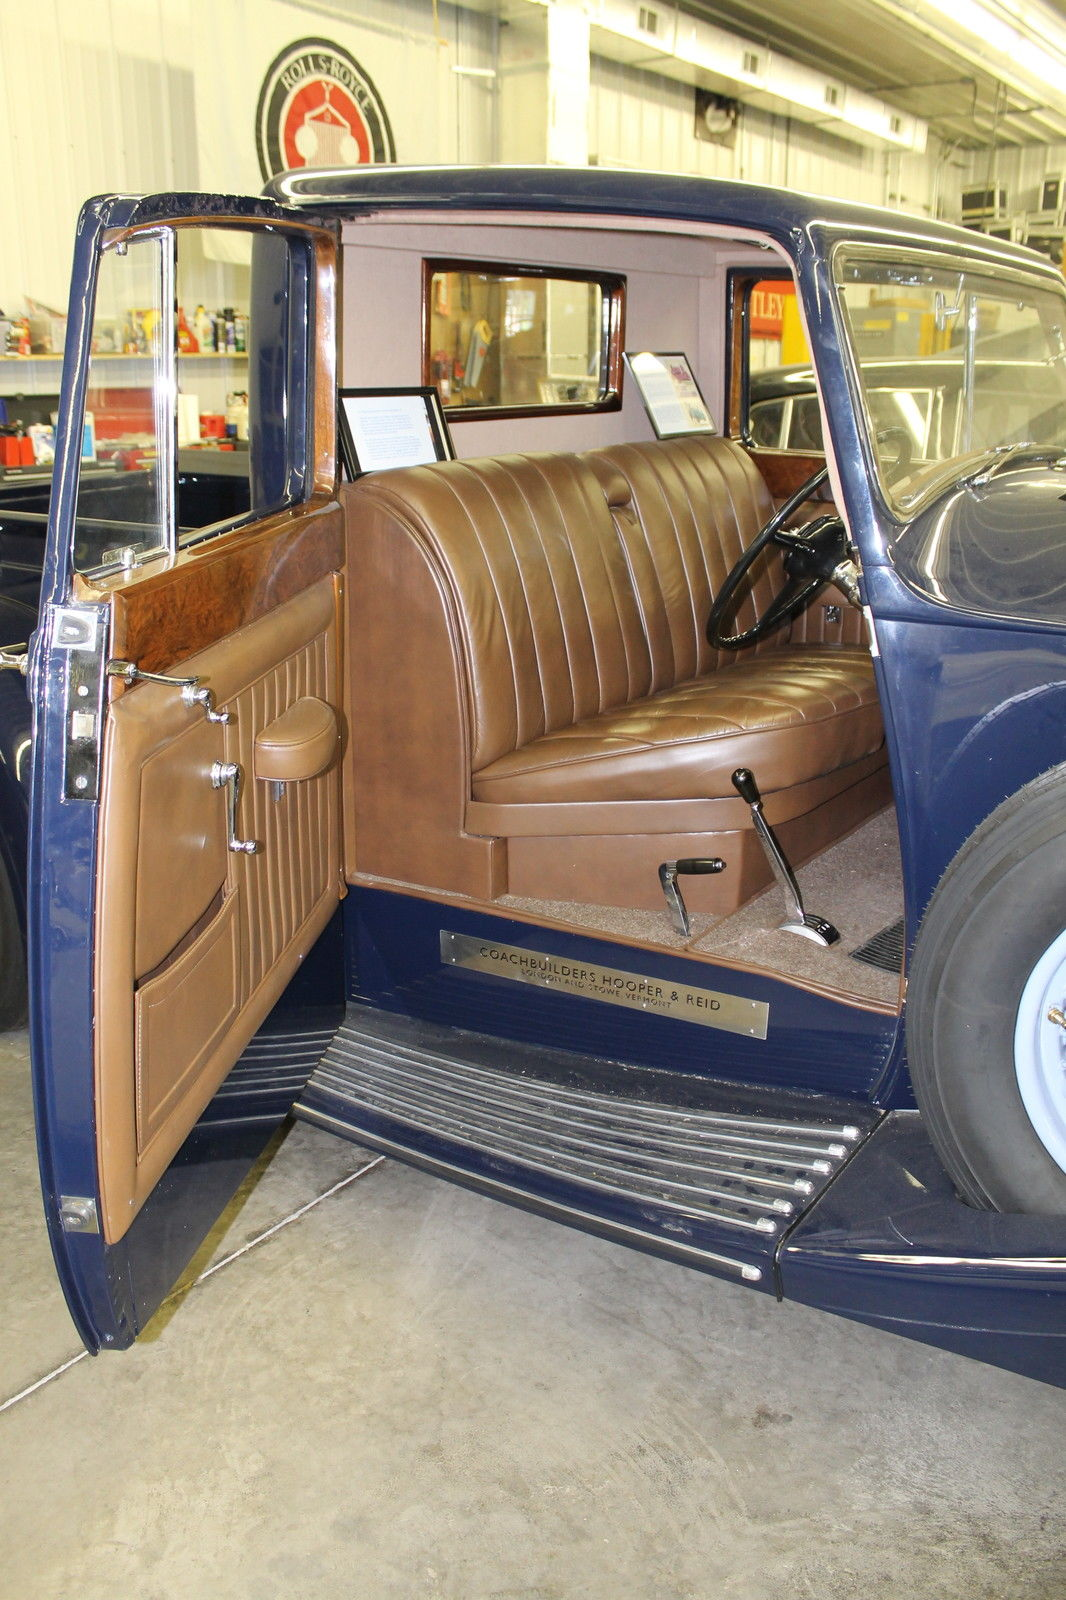 Rolls Royce Pickup Truck Is The Classiest Way To Haul A